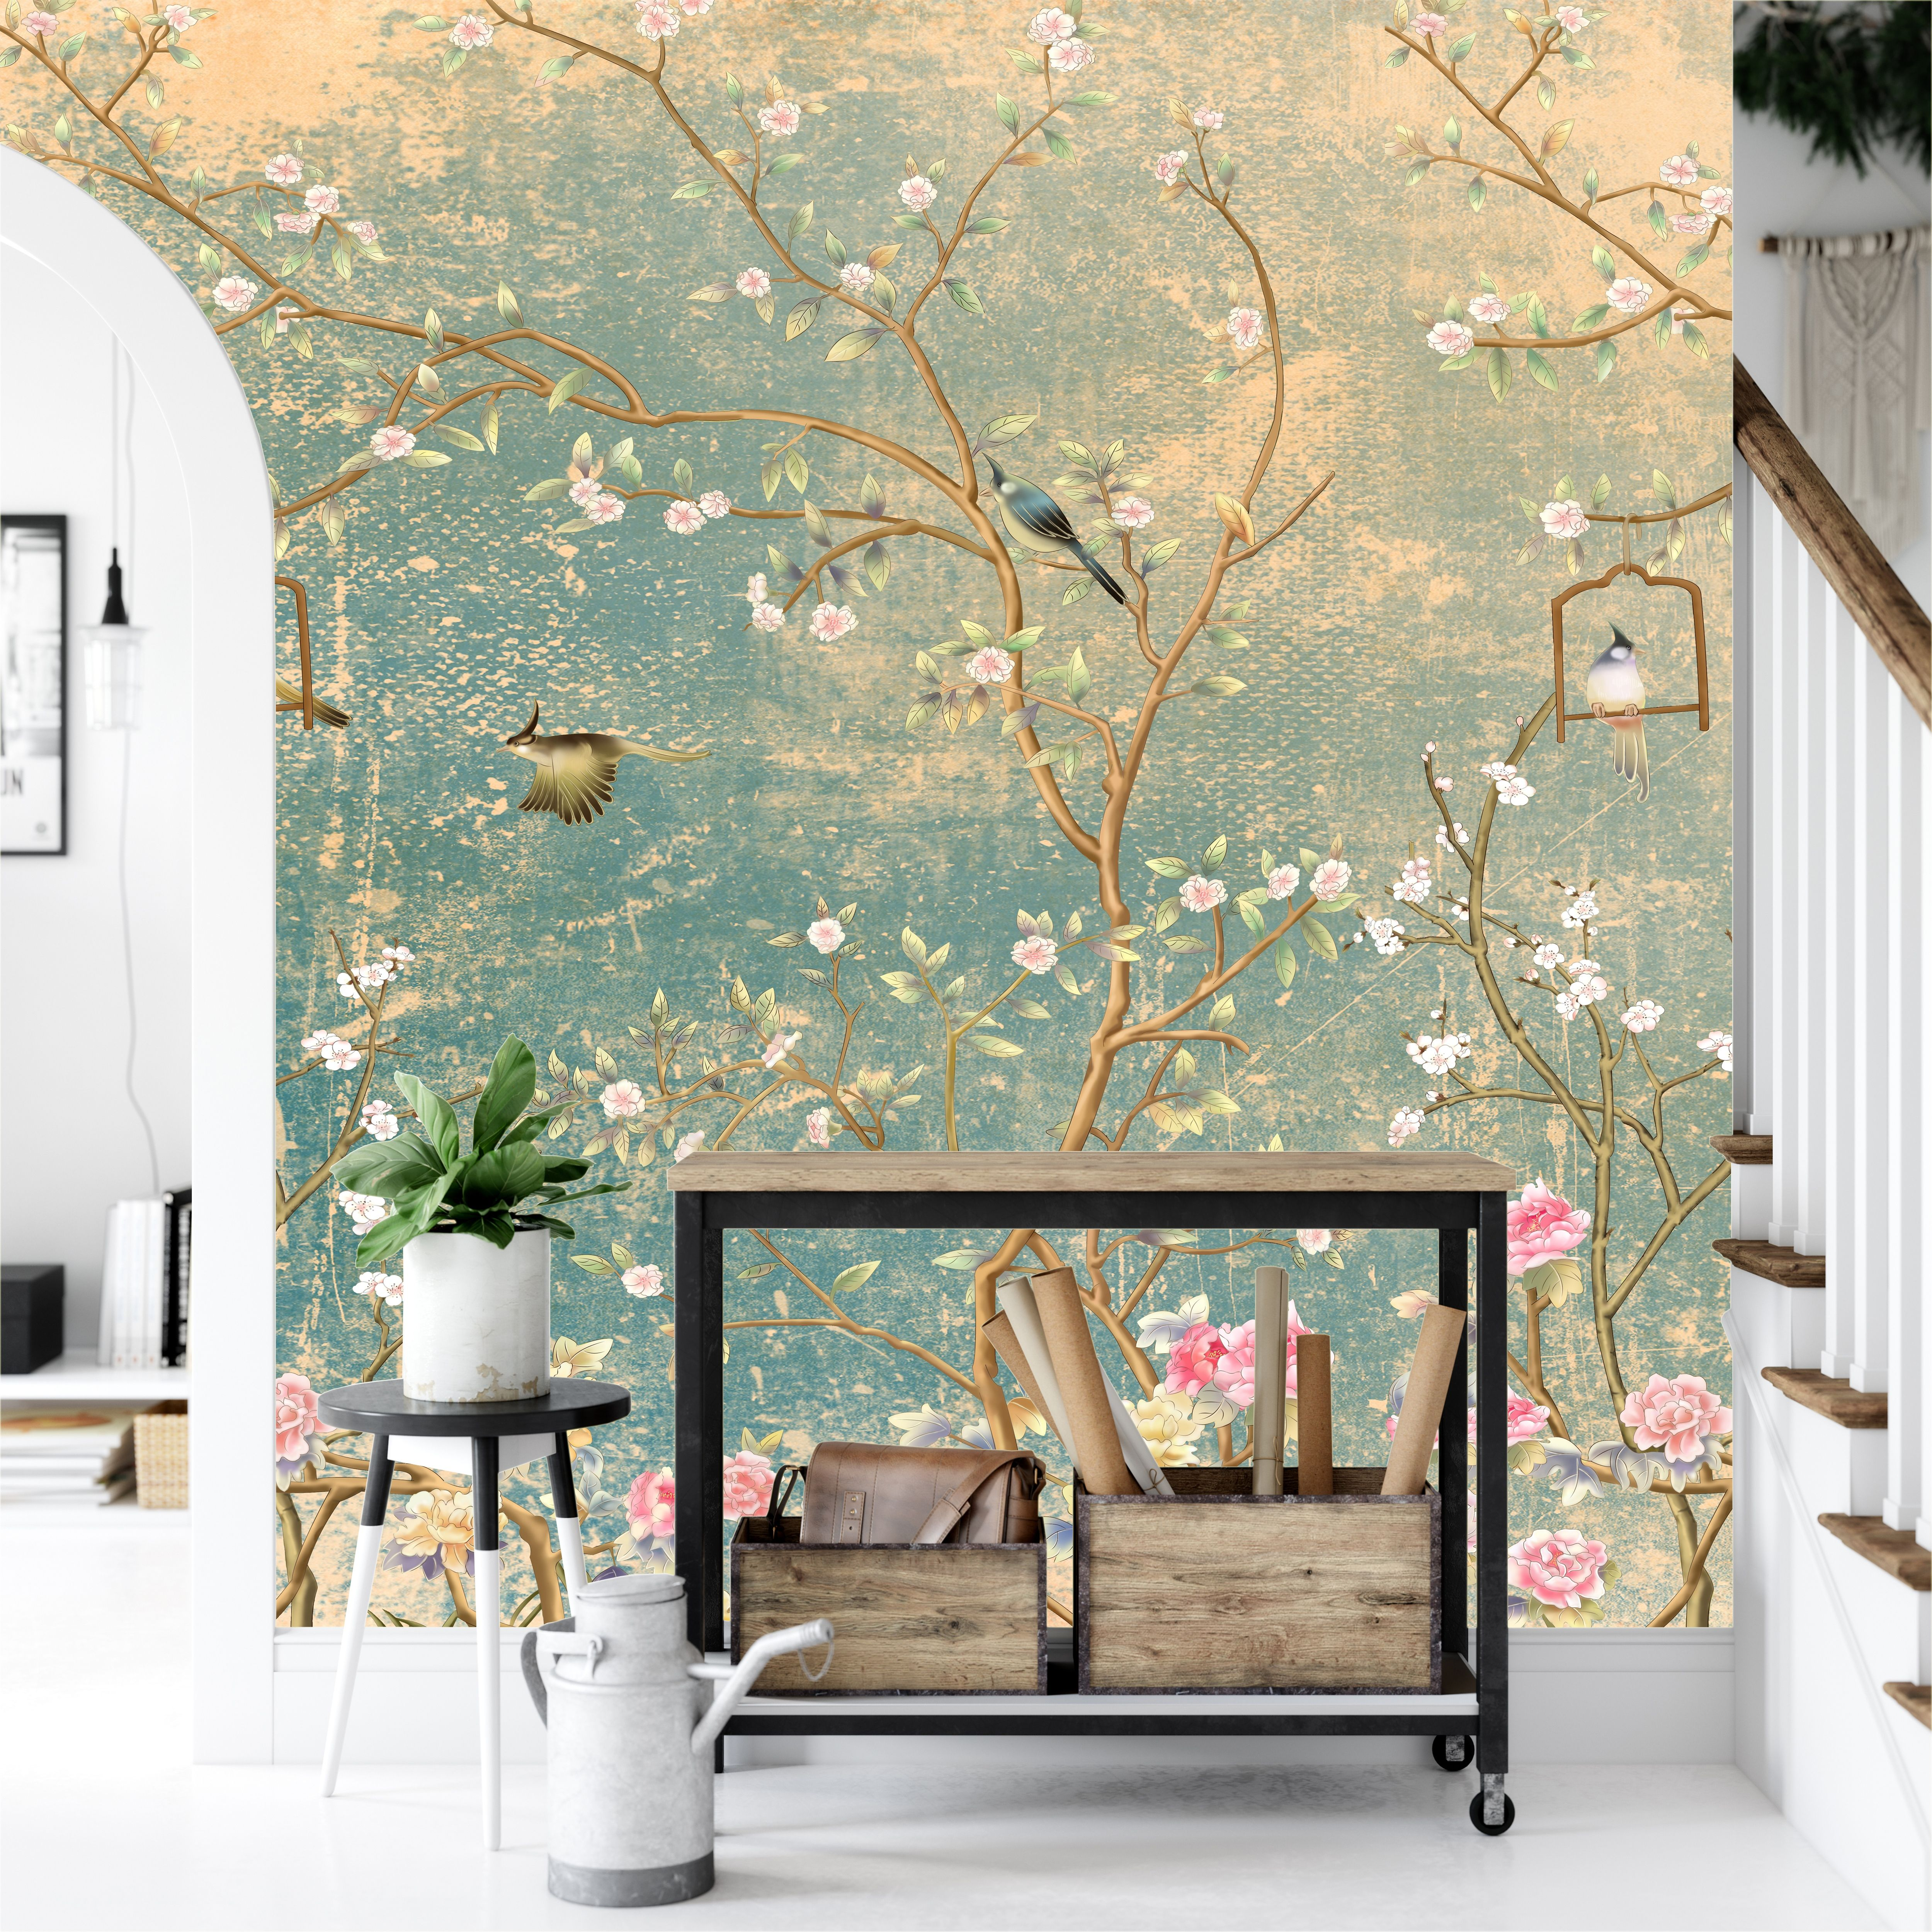 Vintage Florals On Grunge Wall Birds Green And Rose Sakura Etsy Peel And Stick Wallpaper Chinoiserie Wallpaper Removable Wallpaper